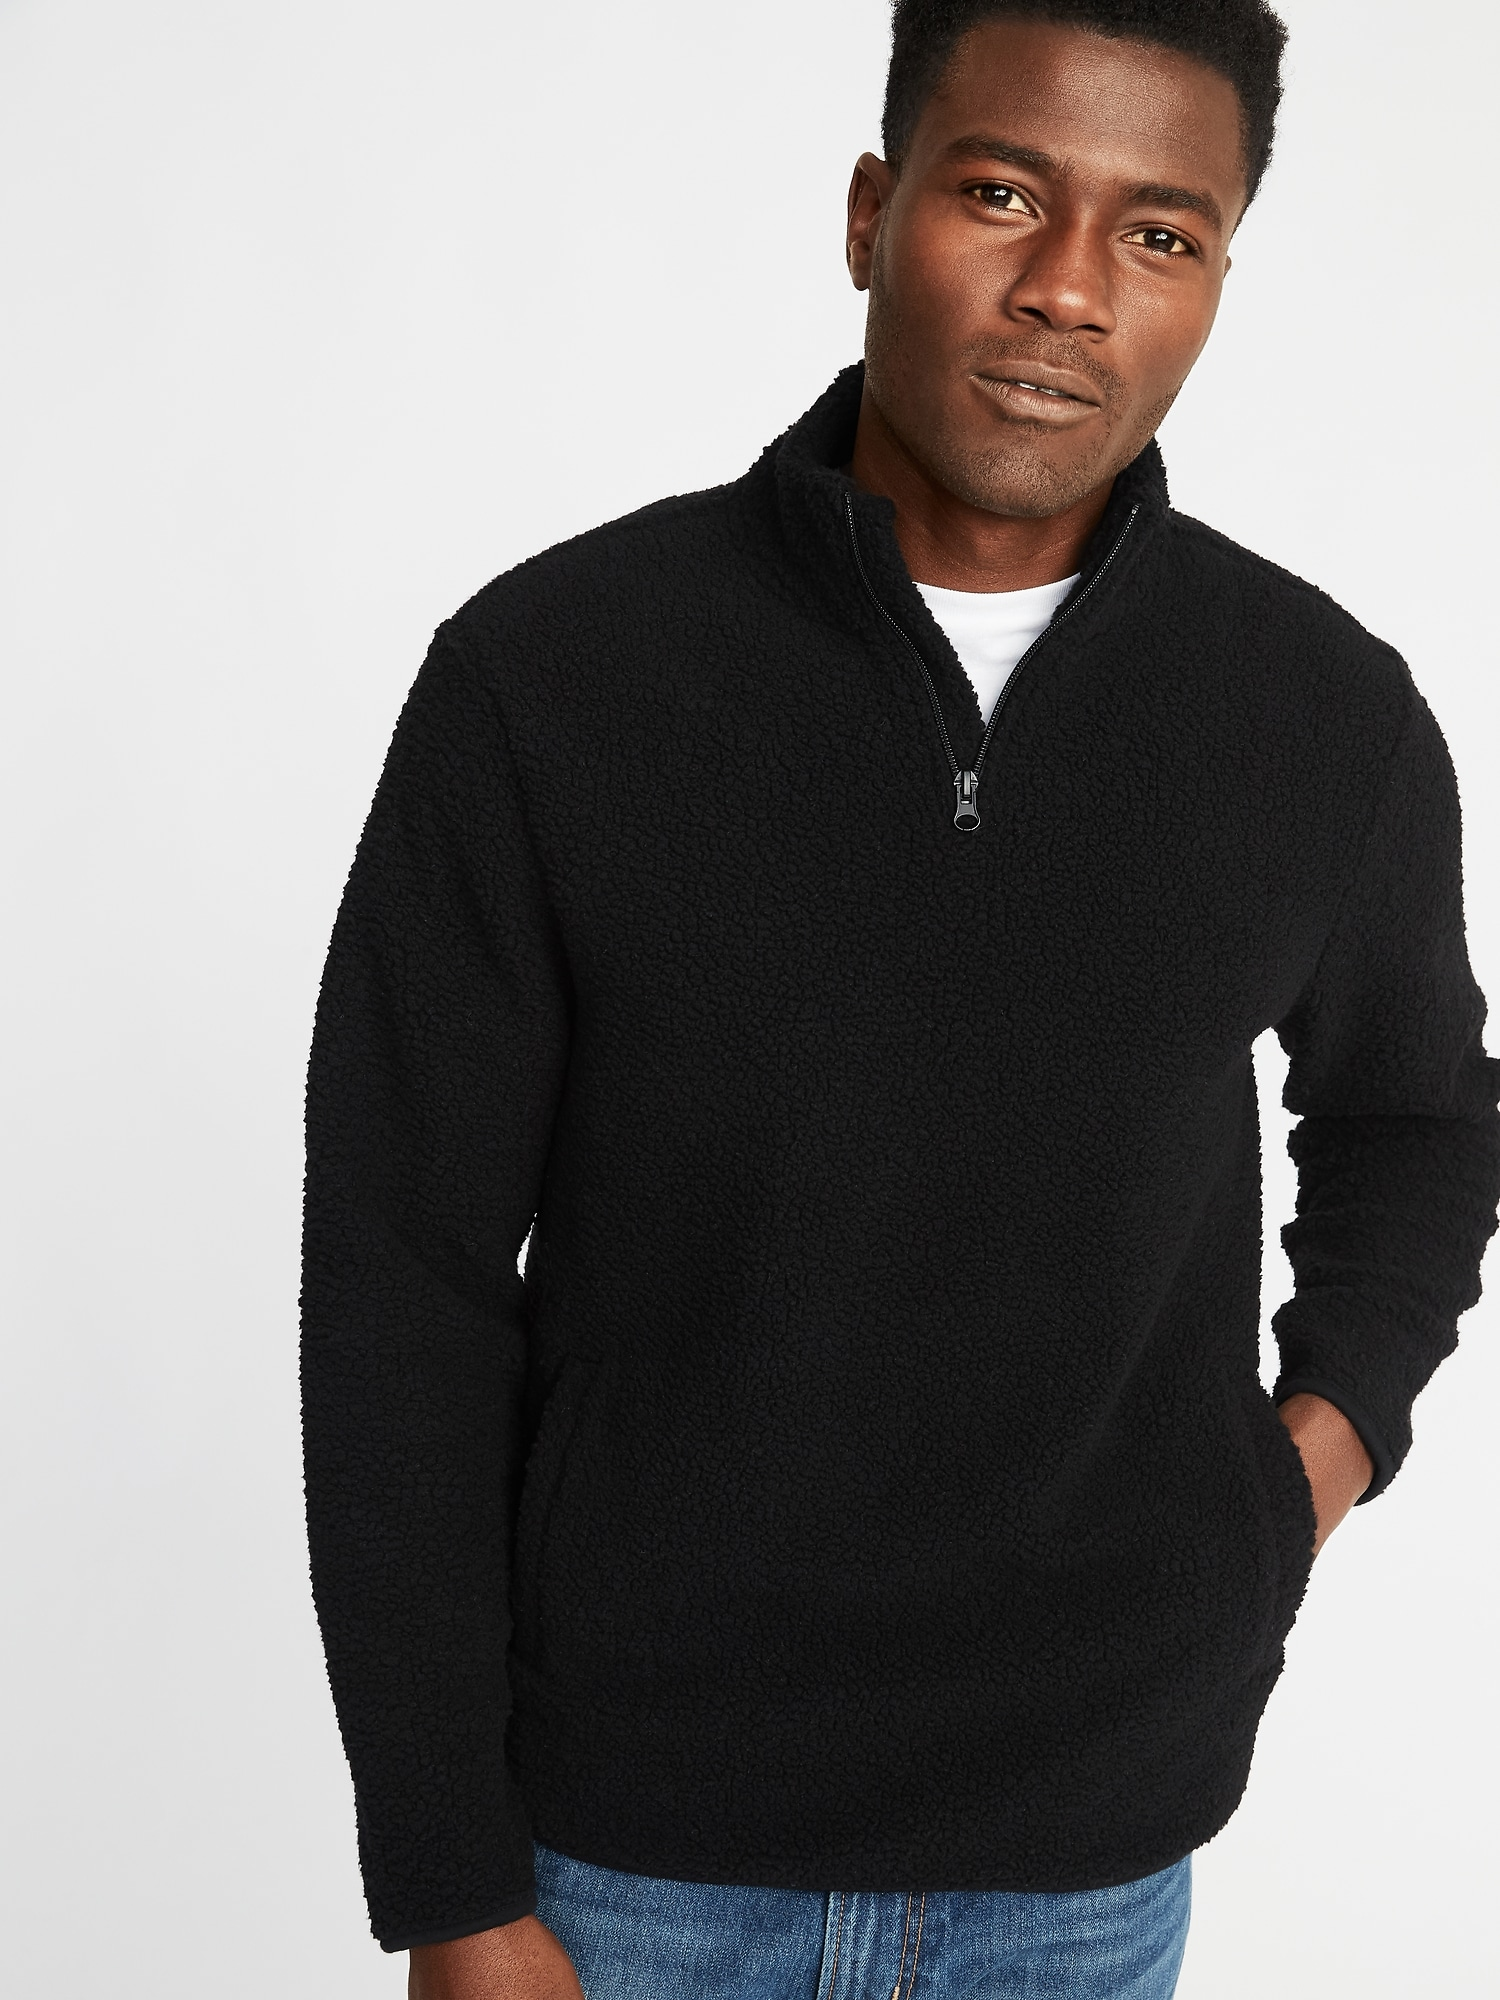 1/4 Zip Sherpa Popover For Men by Old Navy